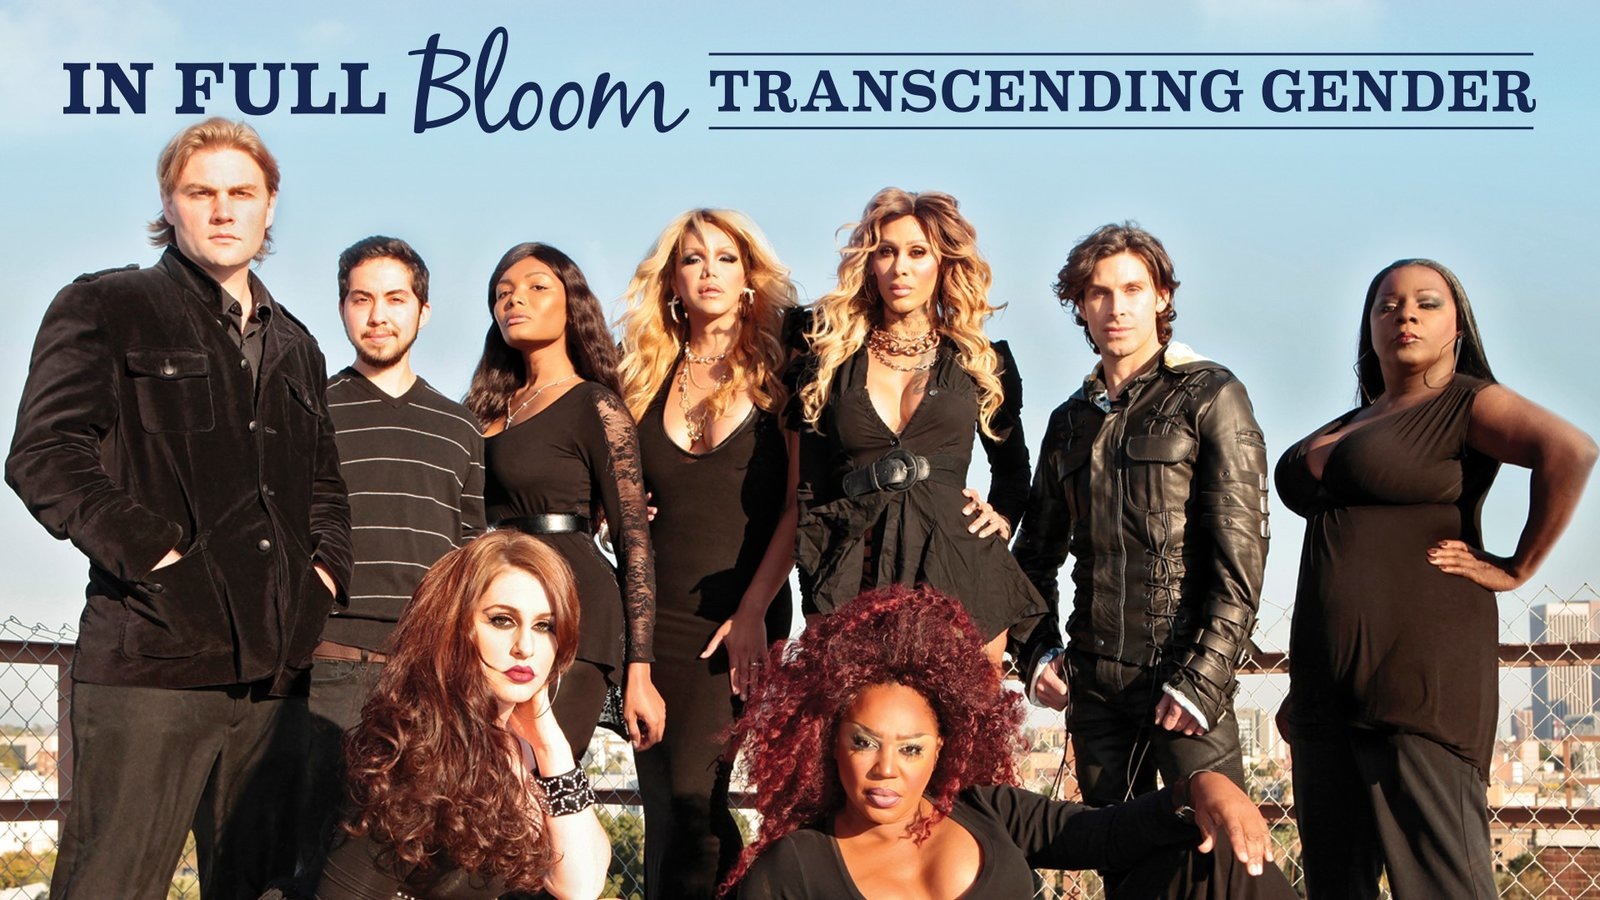 In Full Bloom: Transcending Gender